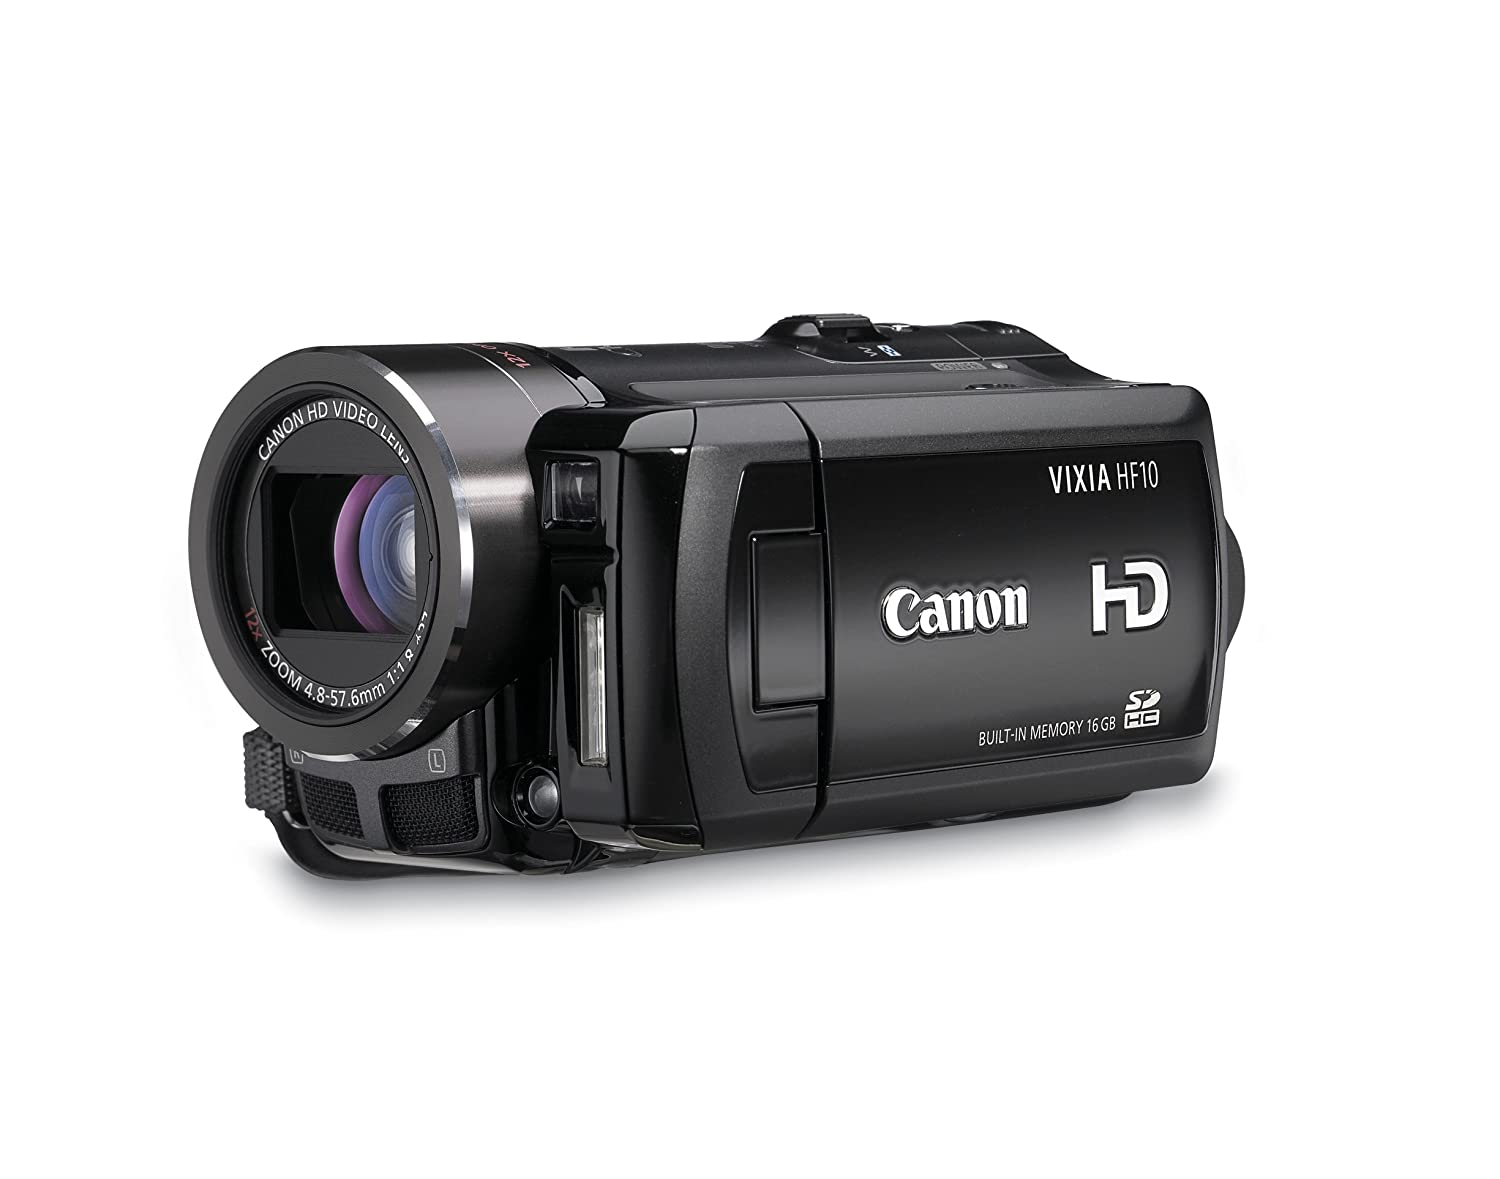 Canon VIXIA HF10 Flash Memory High Definition Camcorder with 16 GB Internal  Flash Memory and 12x Optical Image Stabilized Zoom: Amazon.ca: Electronics